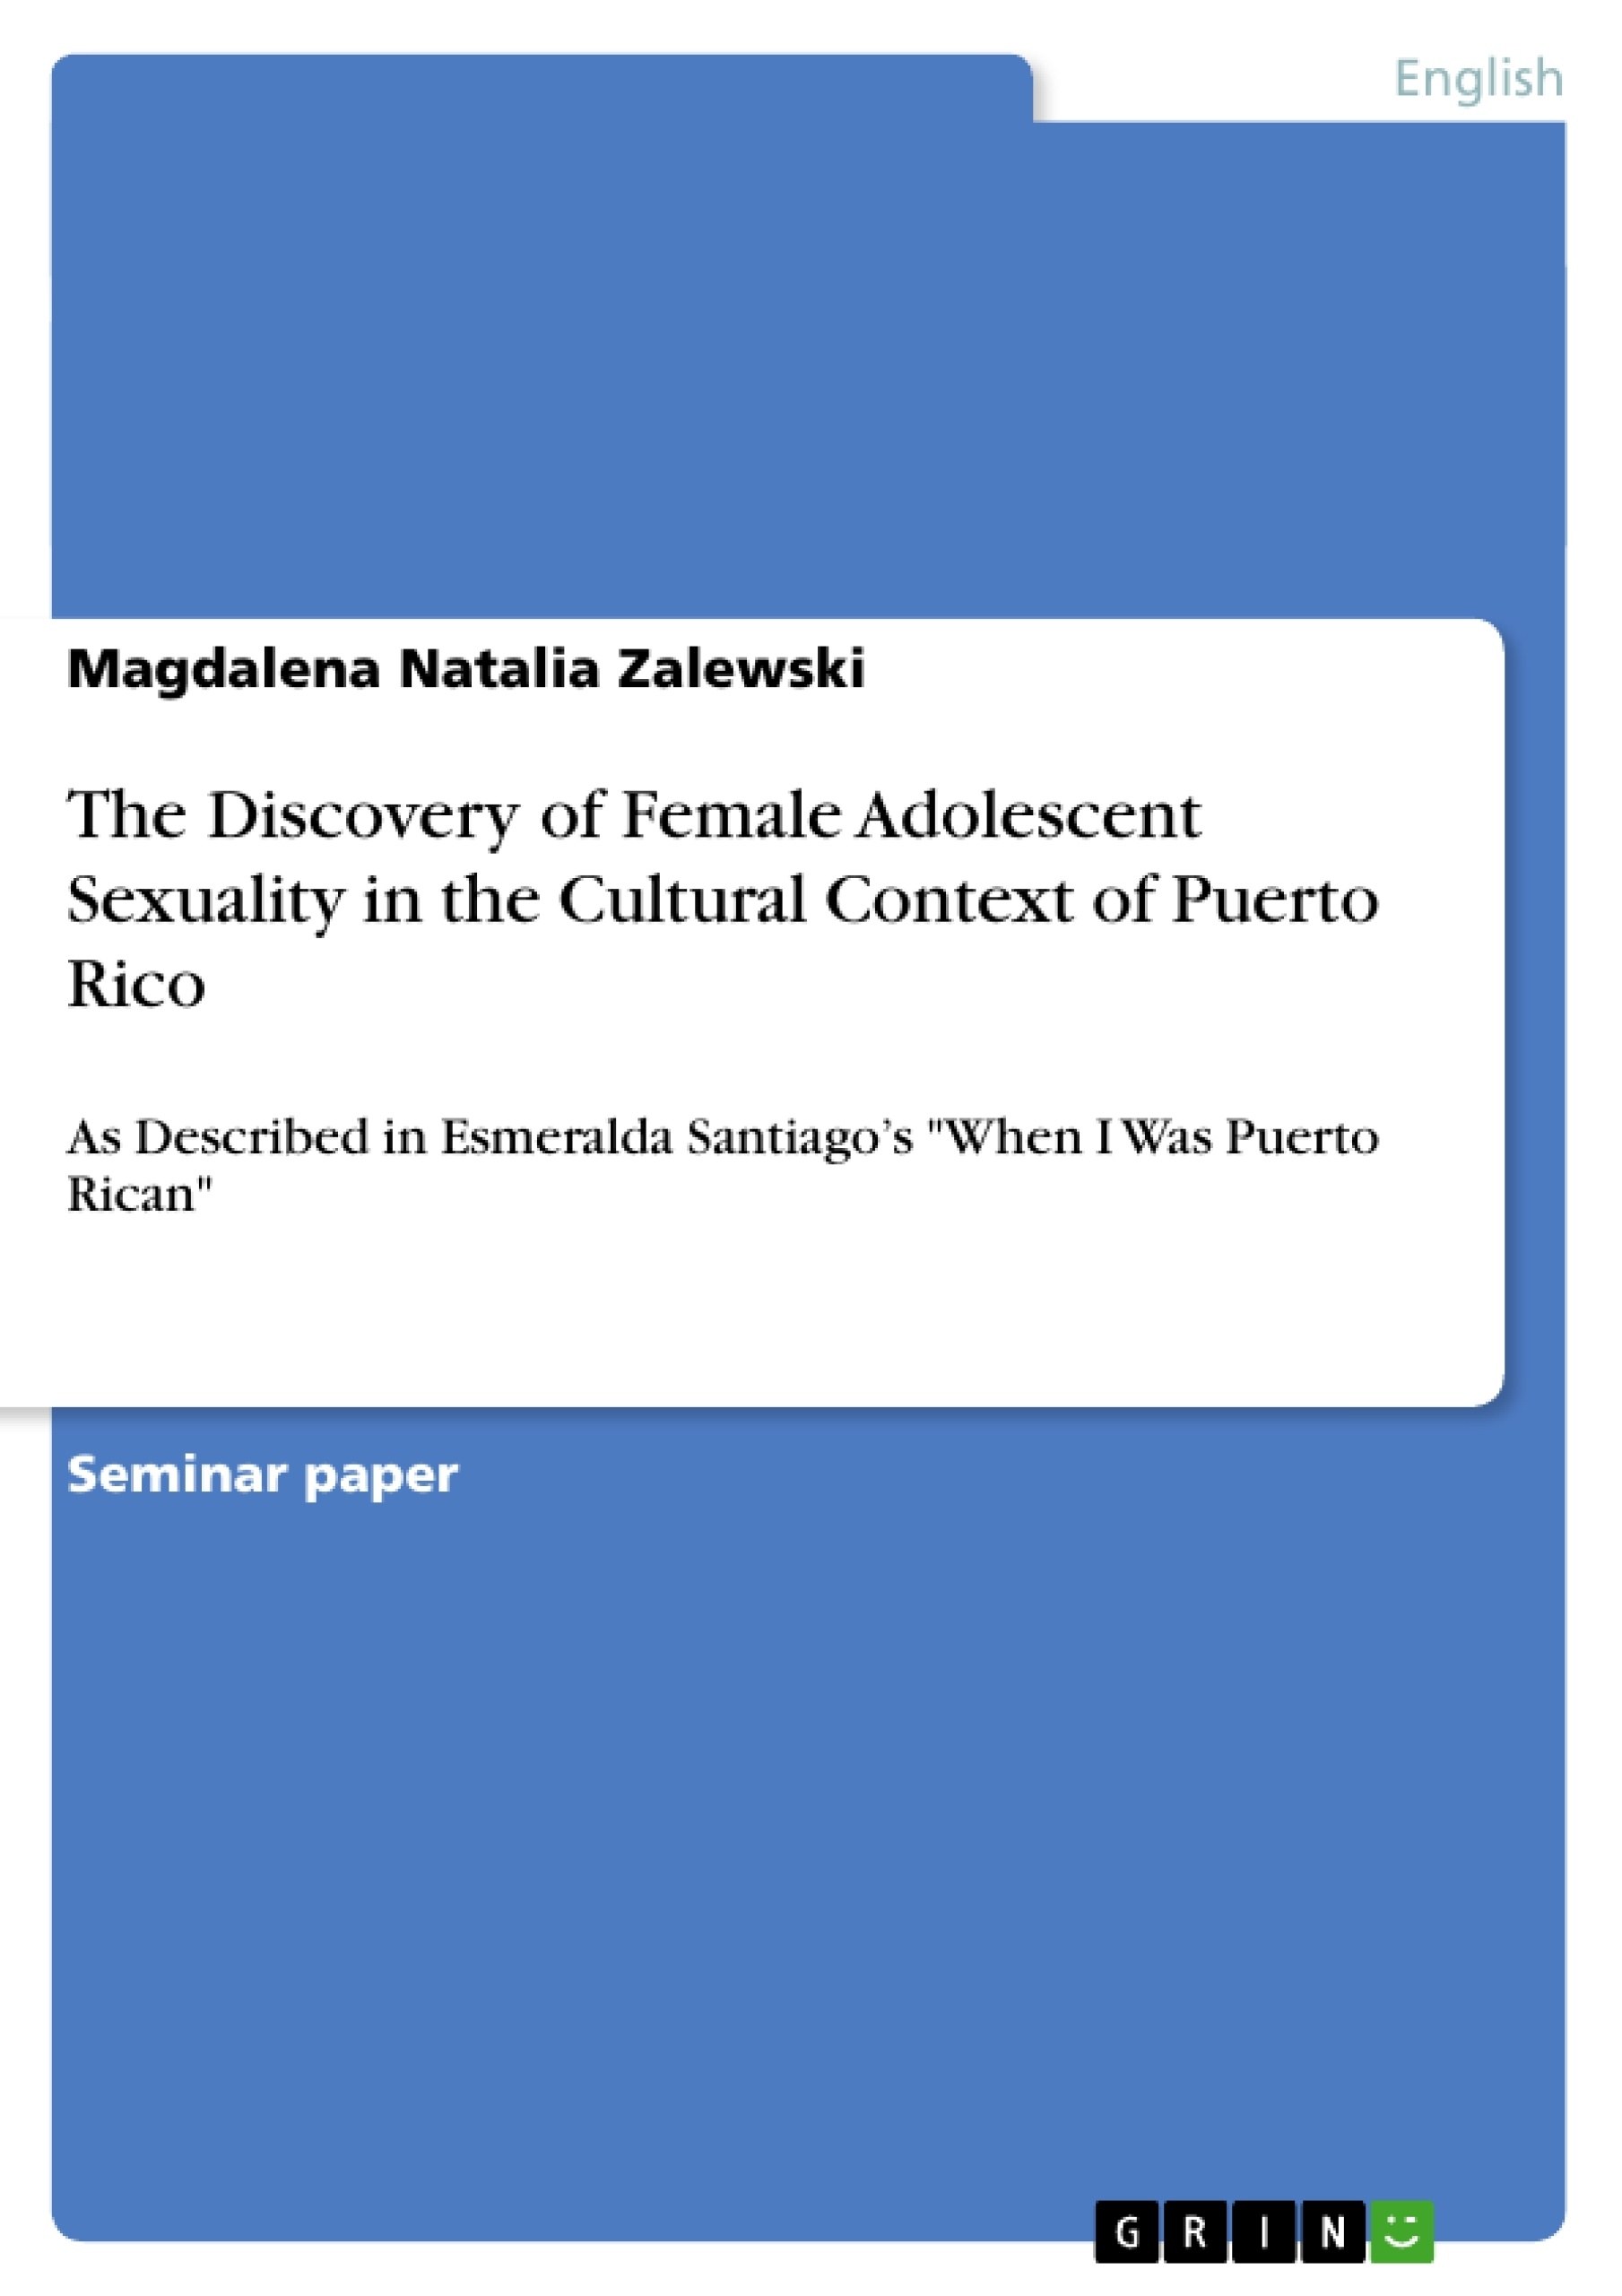 Title: The Discovery of Female Adolescent Sexuality in the Cultural Context of Puerto Rico